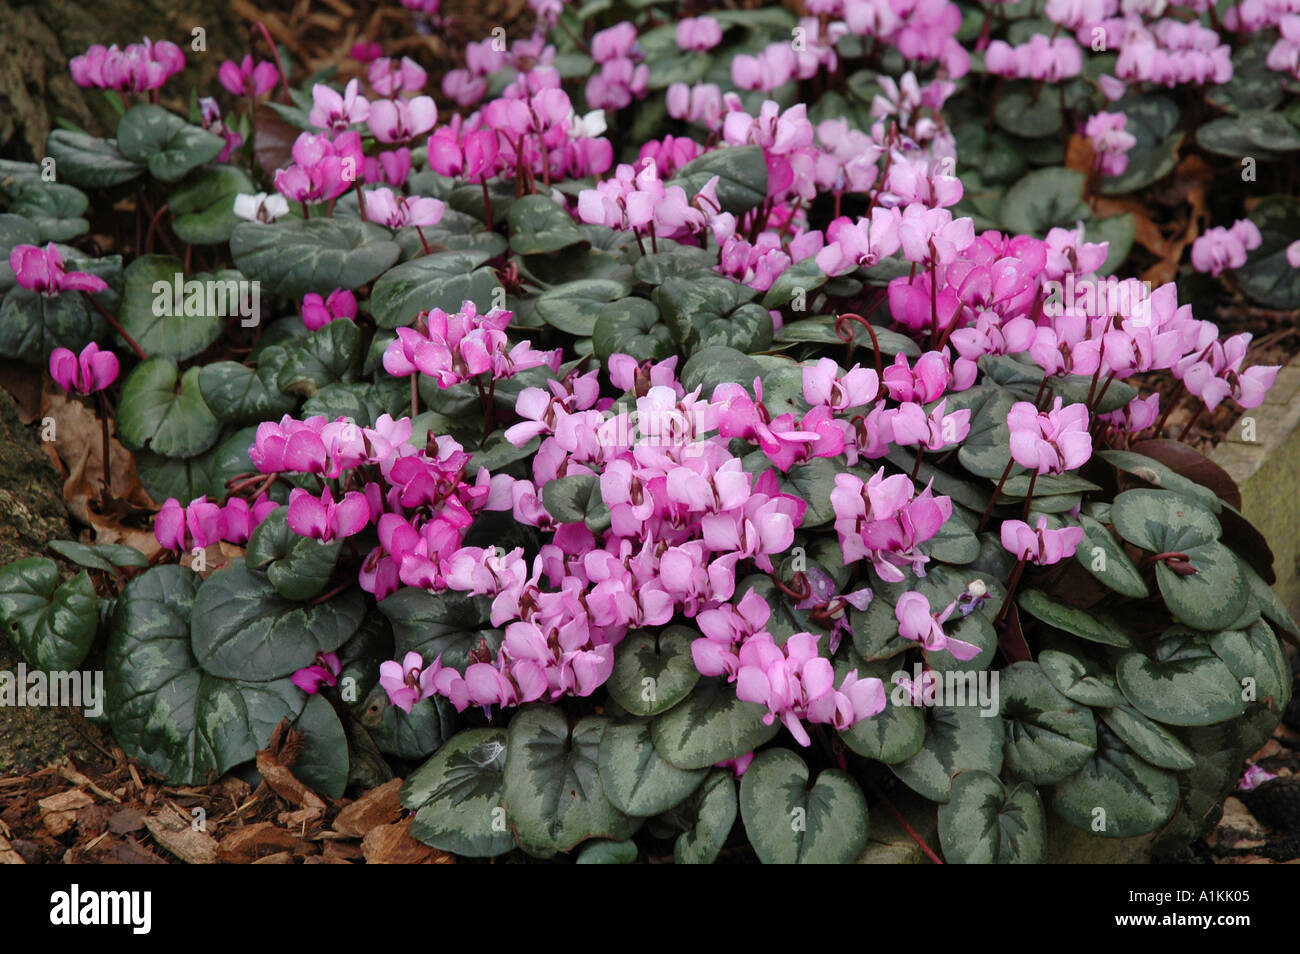 Cyclamenus Coum Winter Flowering Cormous Bulbous Perennial With Good Ground  Cover Foliage For Shaded Areas